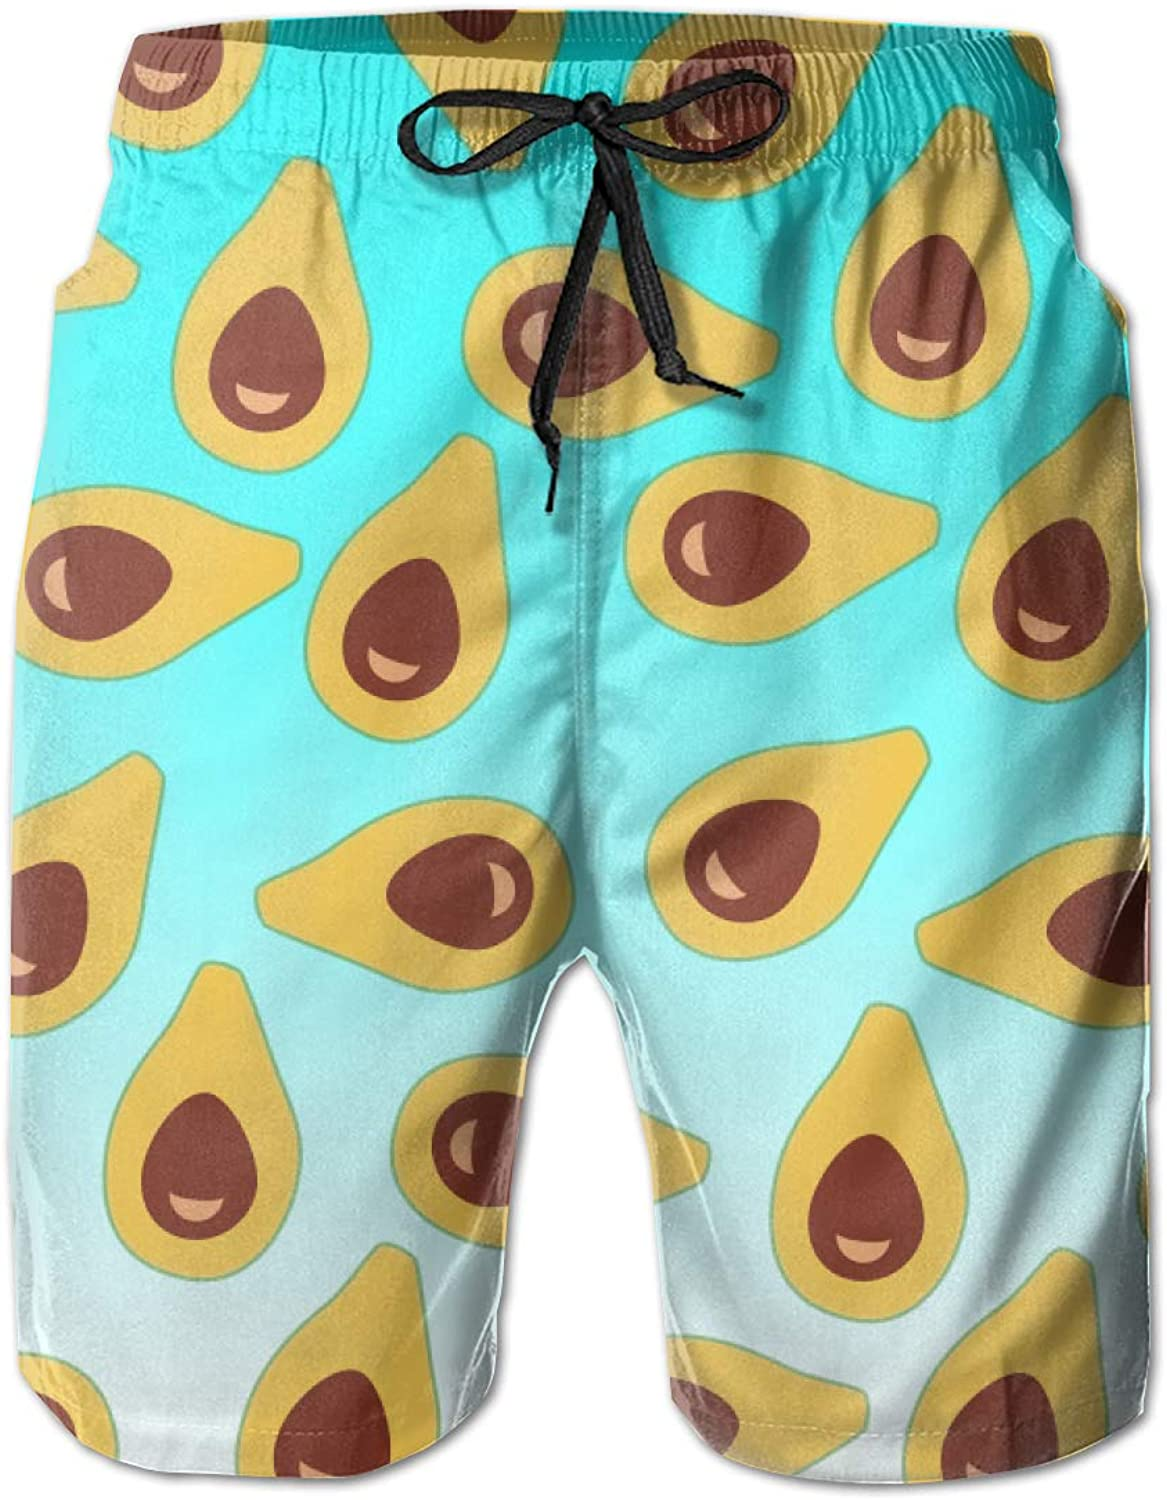 595c31559a Linxher Fruits Fruit Avocados Men's Swim Trunks Trunks Trunks Quick Dry  Swimming Volley Beach Board Shorts e58376